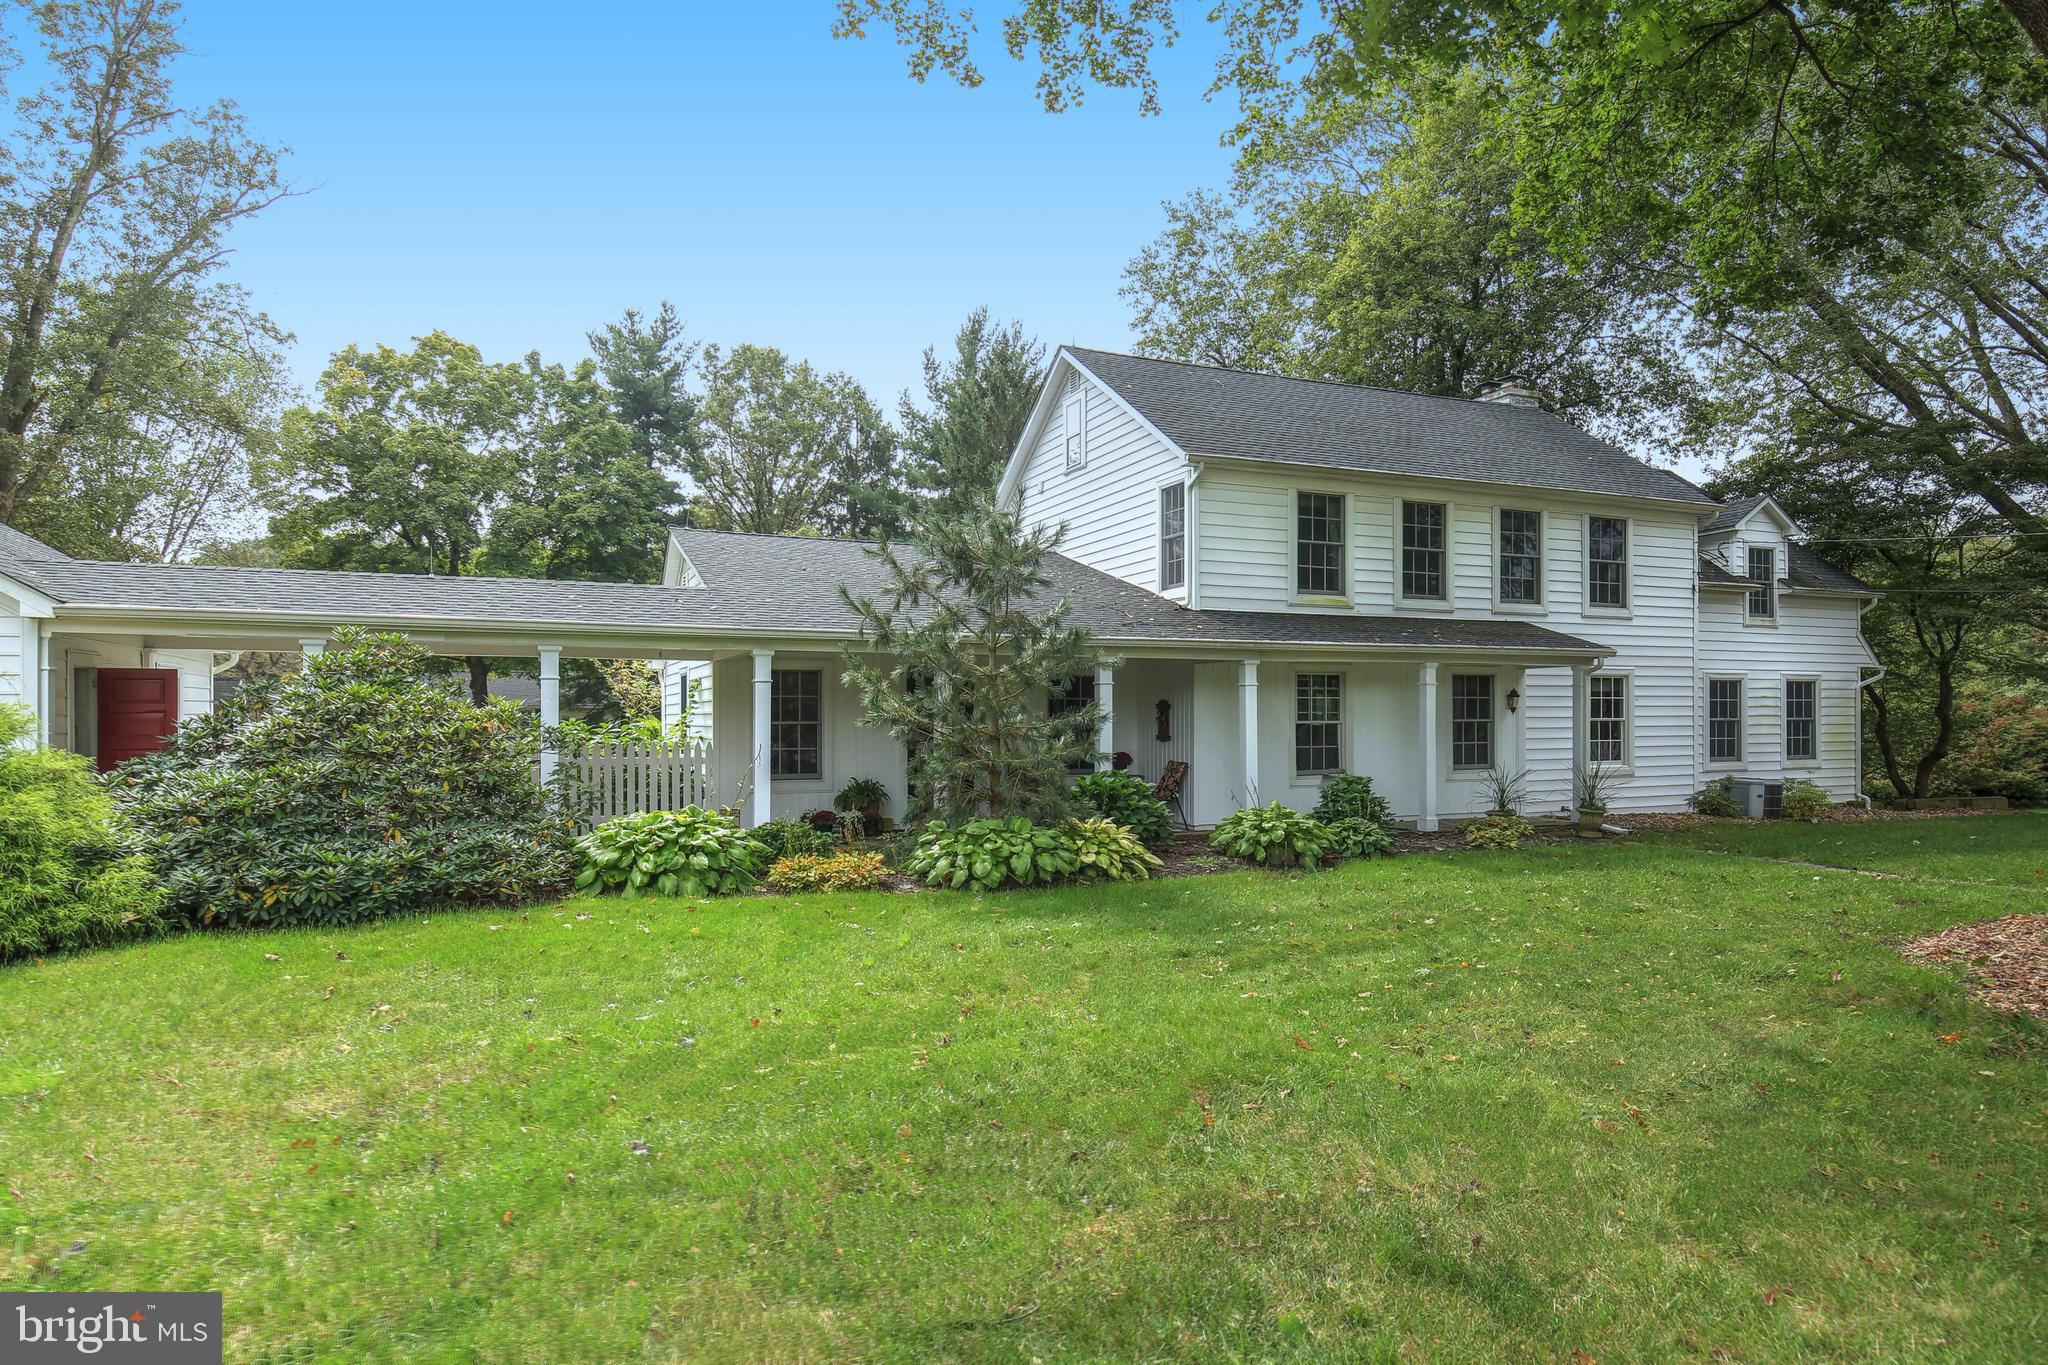 143 COPPER HILL ROAD, RINGOES, NJ 08551